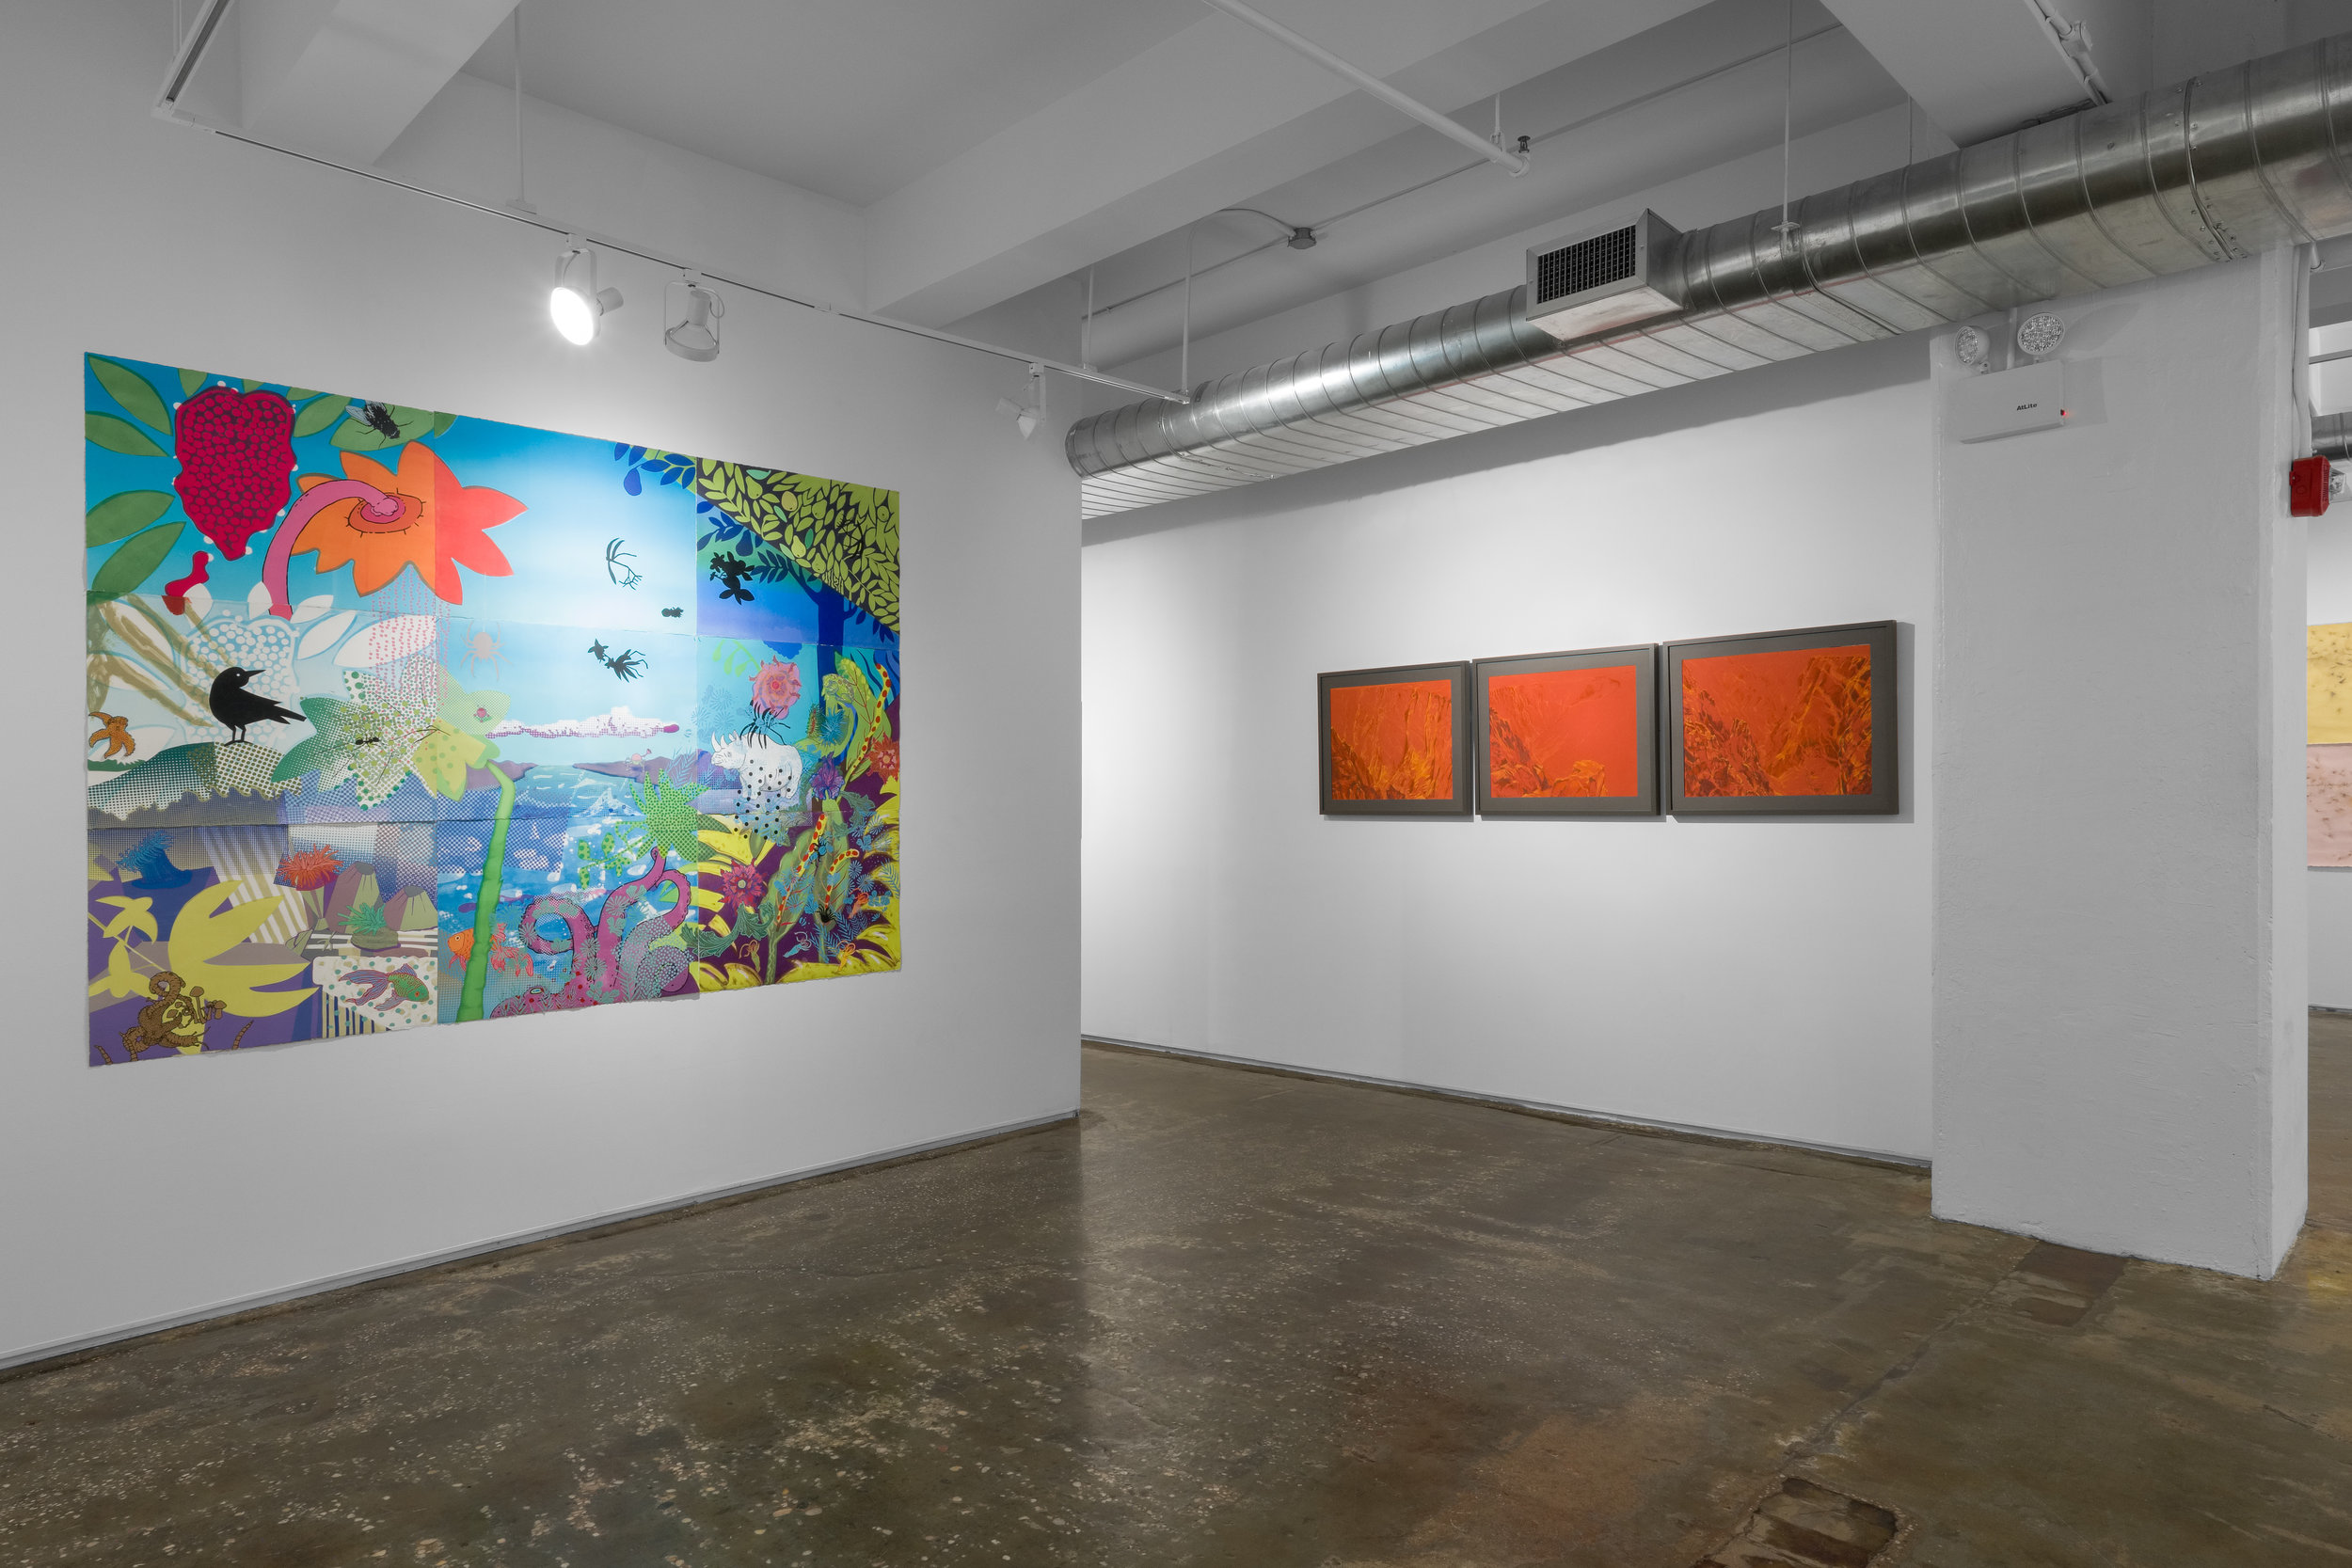 """Left: Vicky Tomayko,  Notes for the Near Threatened , 2017. Monoprint with silkscreen collage and paint on paper  Right: Mary-Ann Kokoska, Three from """"Permanent Red"""":  Awakening, Embrace, Cracke , 2017. Pastel on paper"""